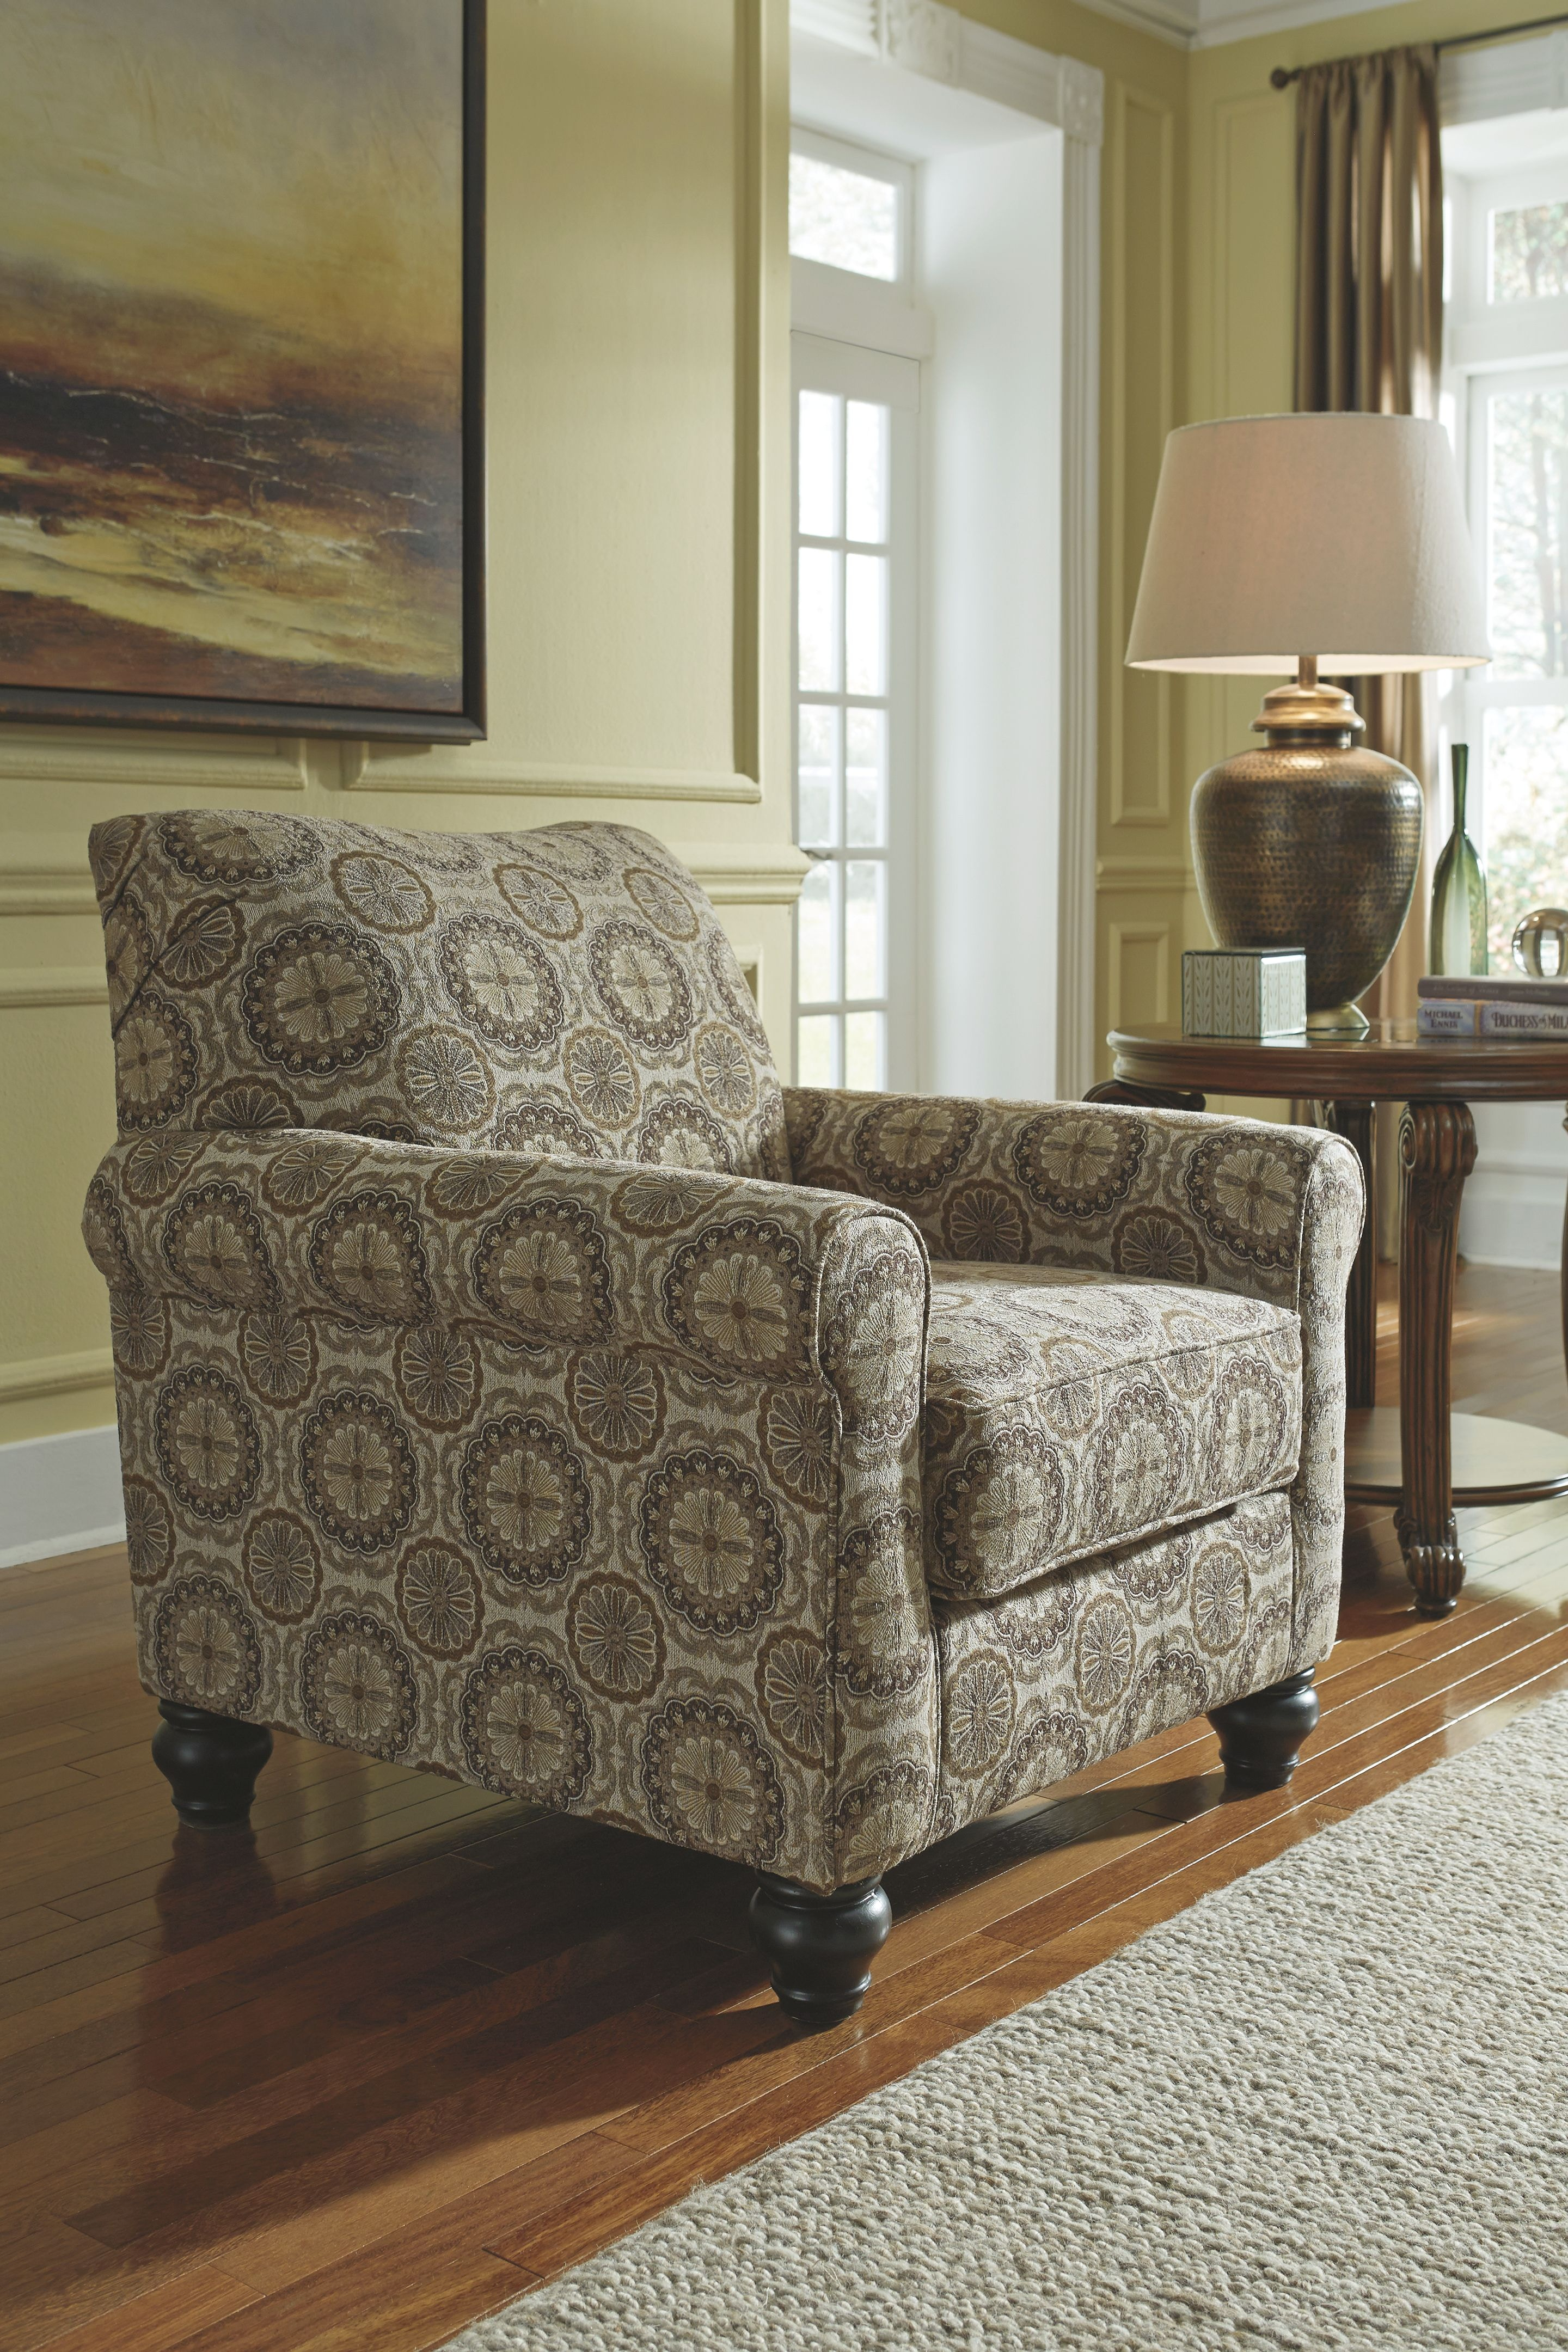 Signature Design By Ashley Accent Chair 800XX21 At Gustafsonu0027s Furniture  And Mattress